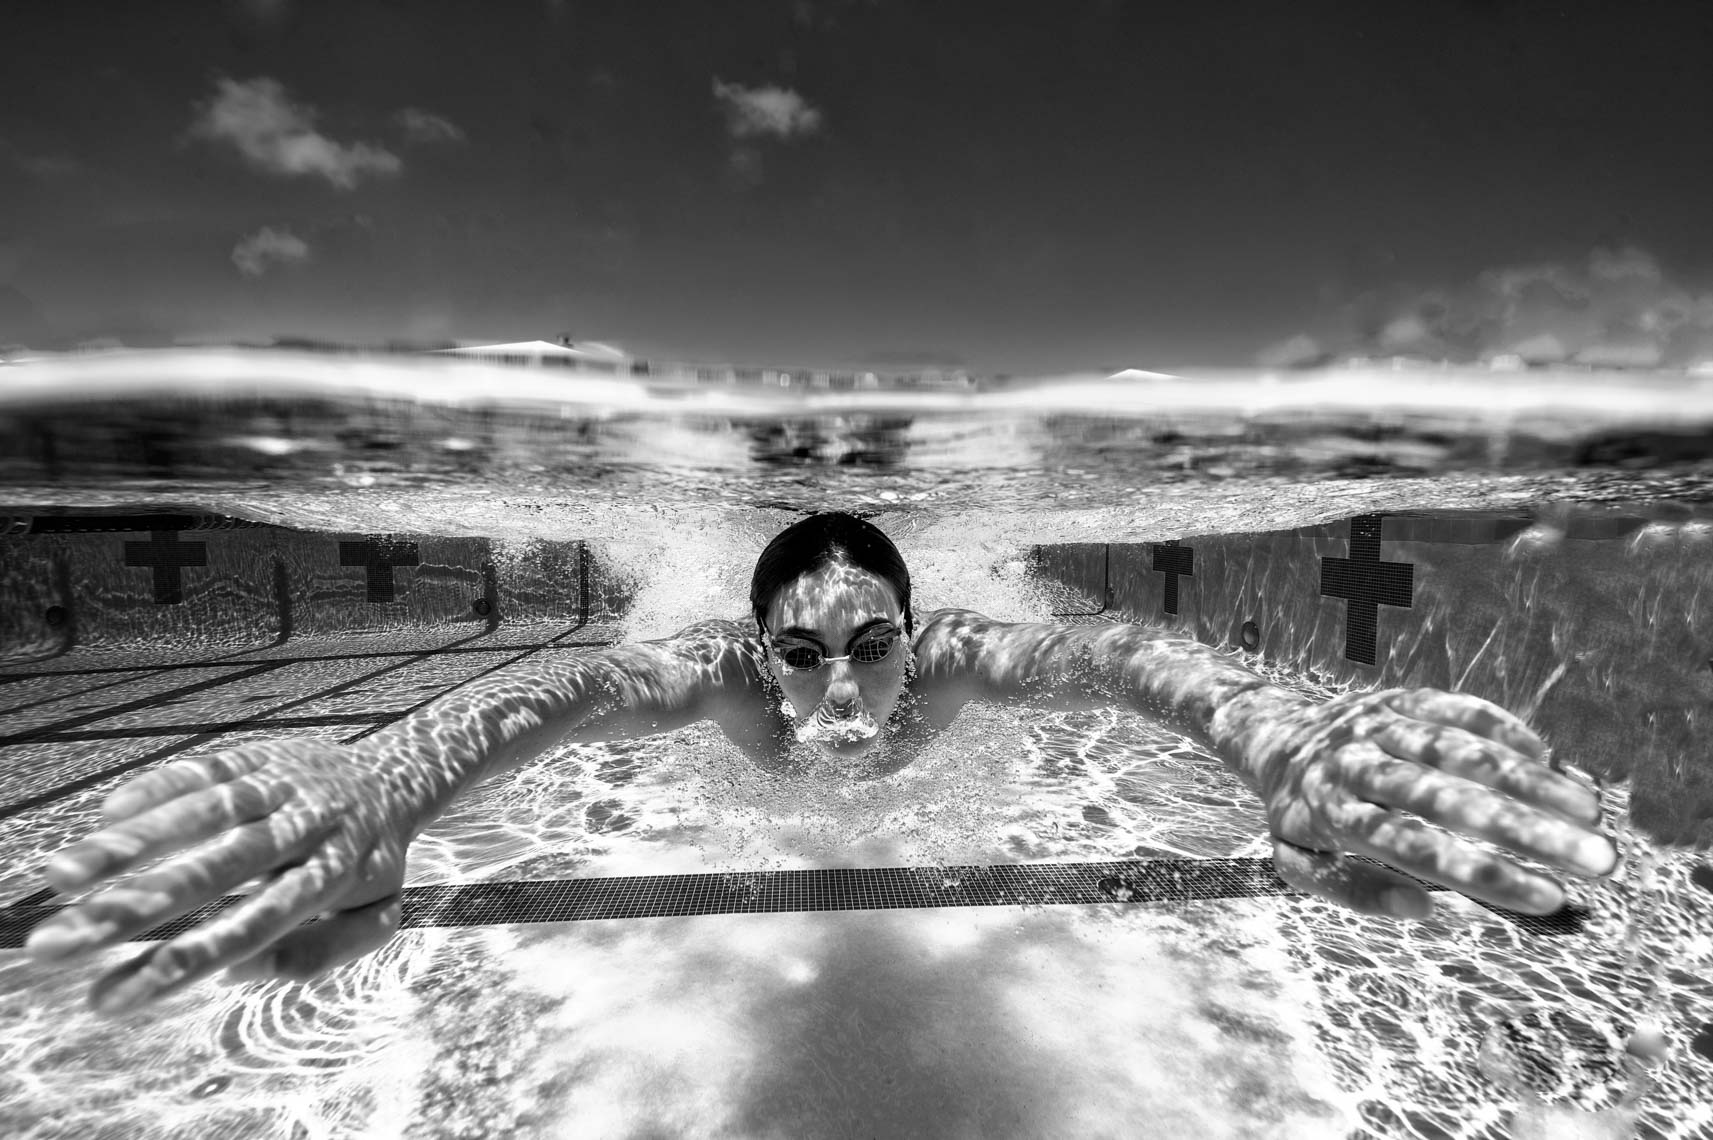 underwater swimmer black and white